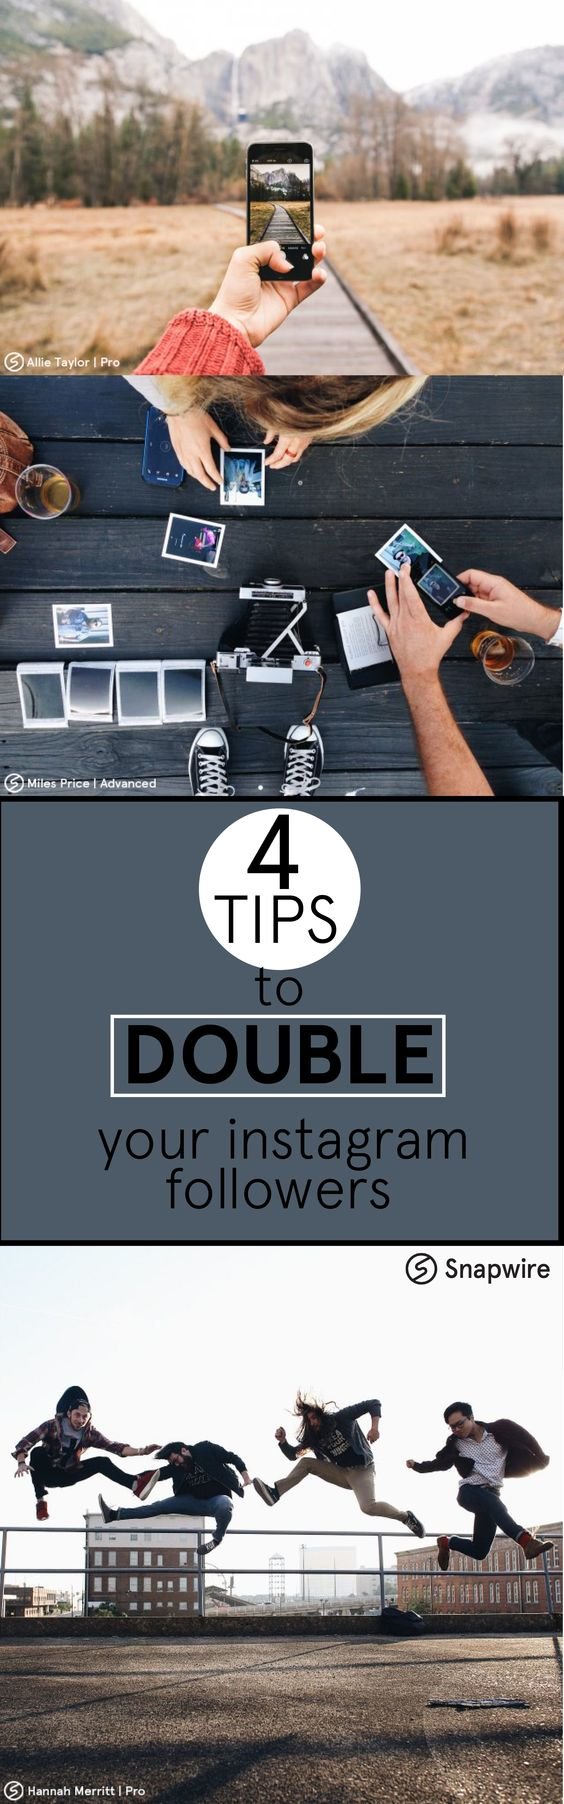 Follow these 4 steps to double your Instagram followers in a week!  https://snapwire.squarespace.com/blog/2016/2/19/want-to-gain-1000-followers-a-week-check-out-these-4-tips